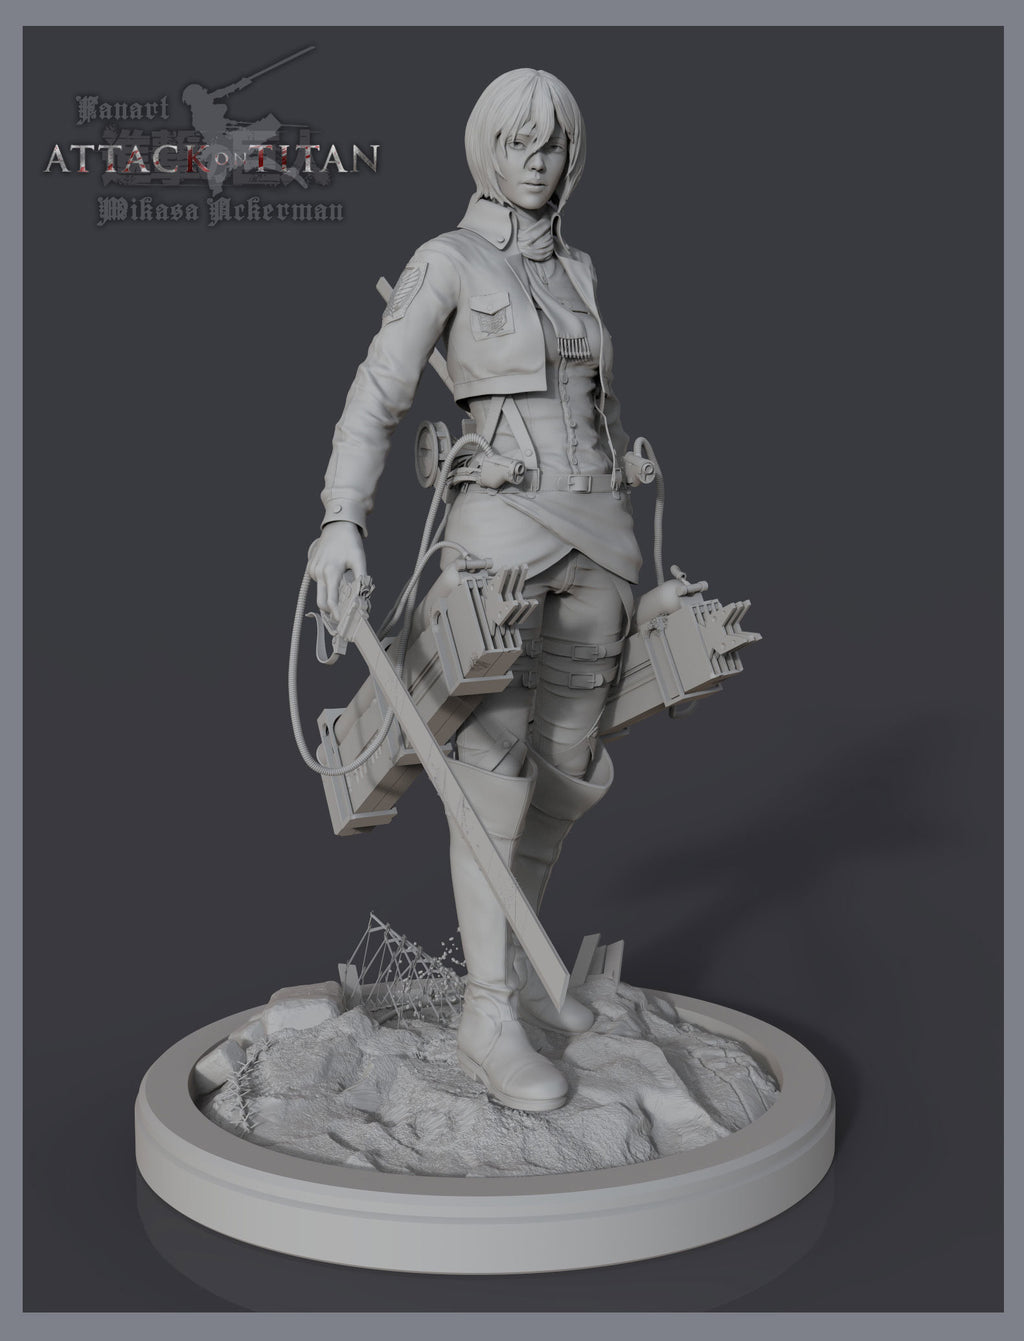 Attack on Titan [Collections File ]3D Print Model Data Stl